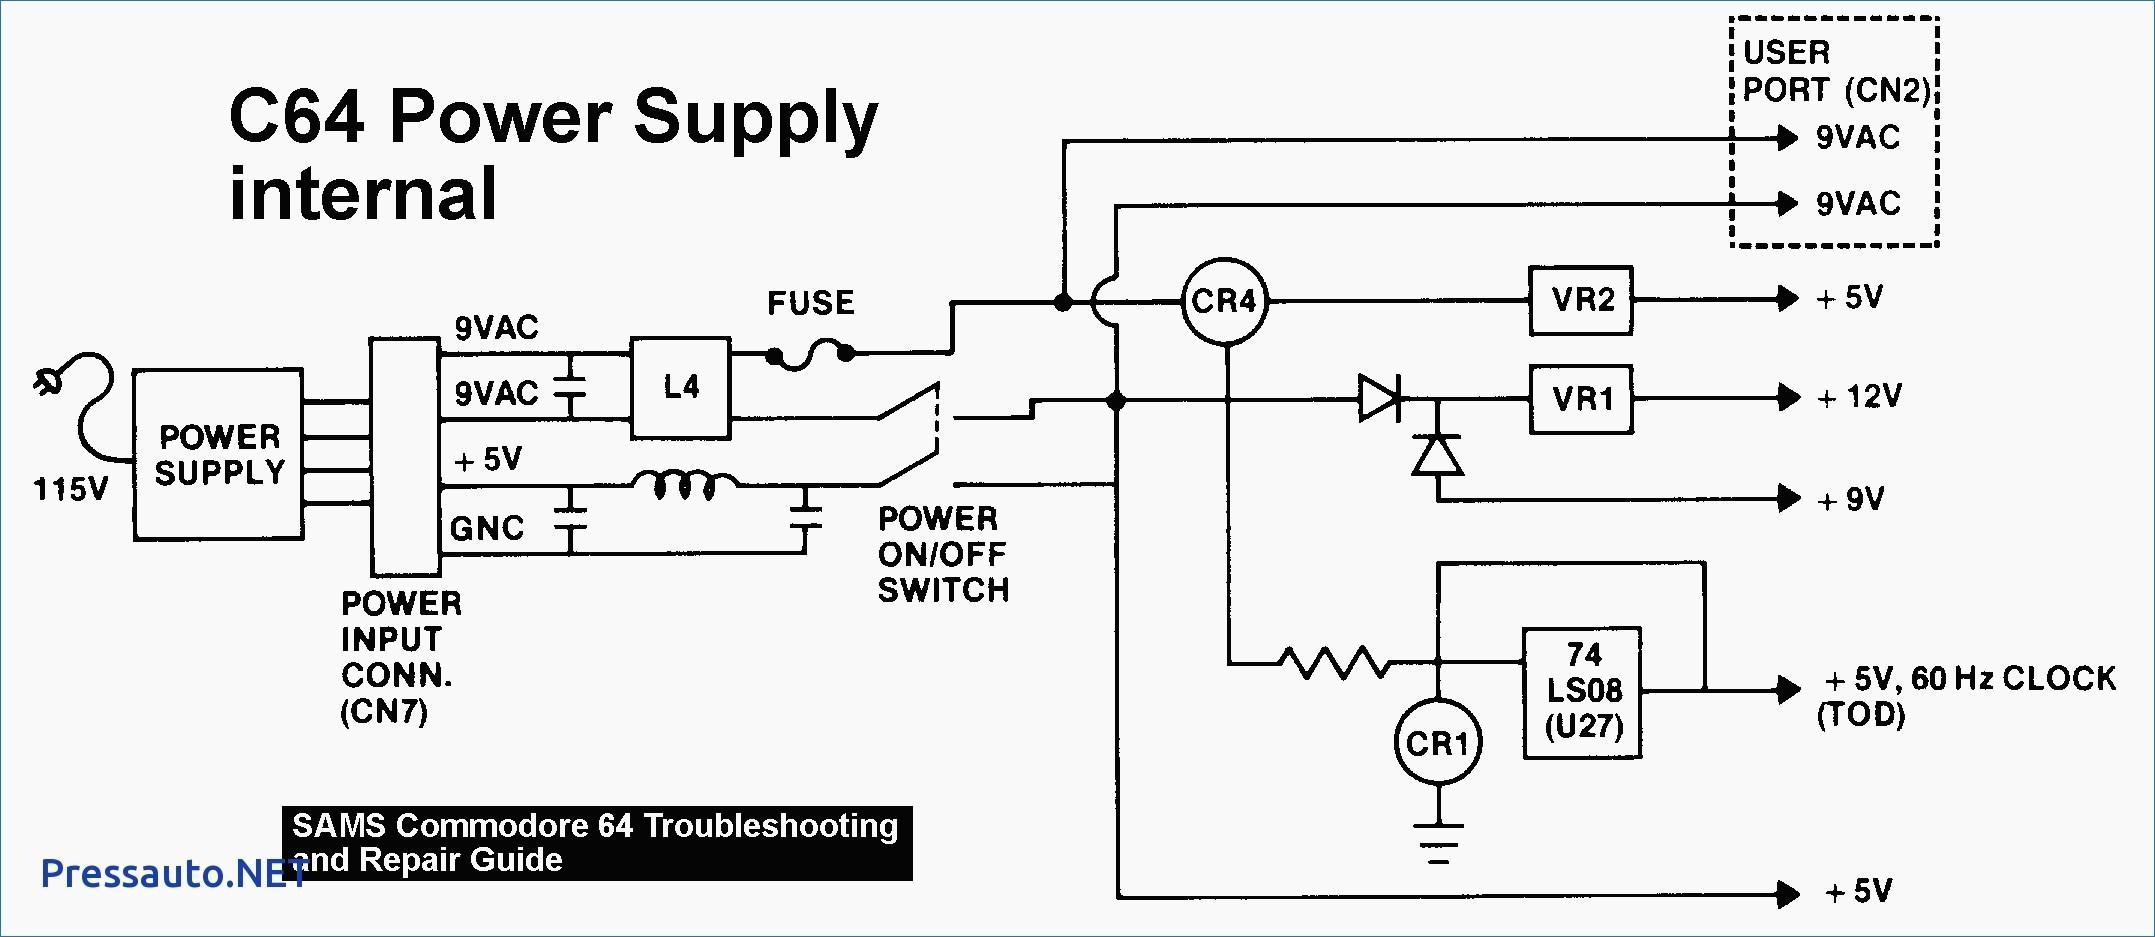 [DIAGRAM_38IS]  AA_1479] Wiring Diagram For Xps Power Supply Free Diagram | Dell Wiring Diagram |  | Menia Ehir Amenti Xolia Nful Mohammedshrine Librar Wiring 101